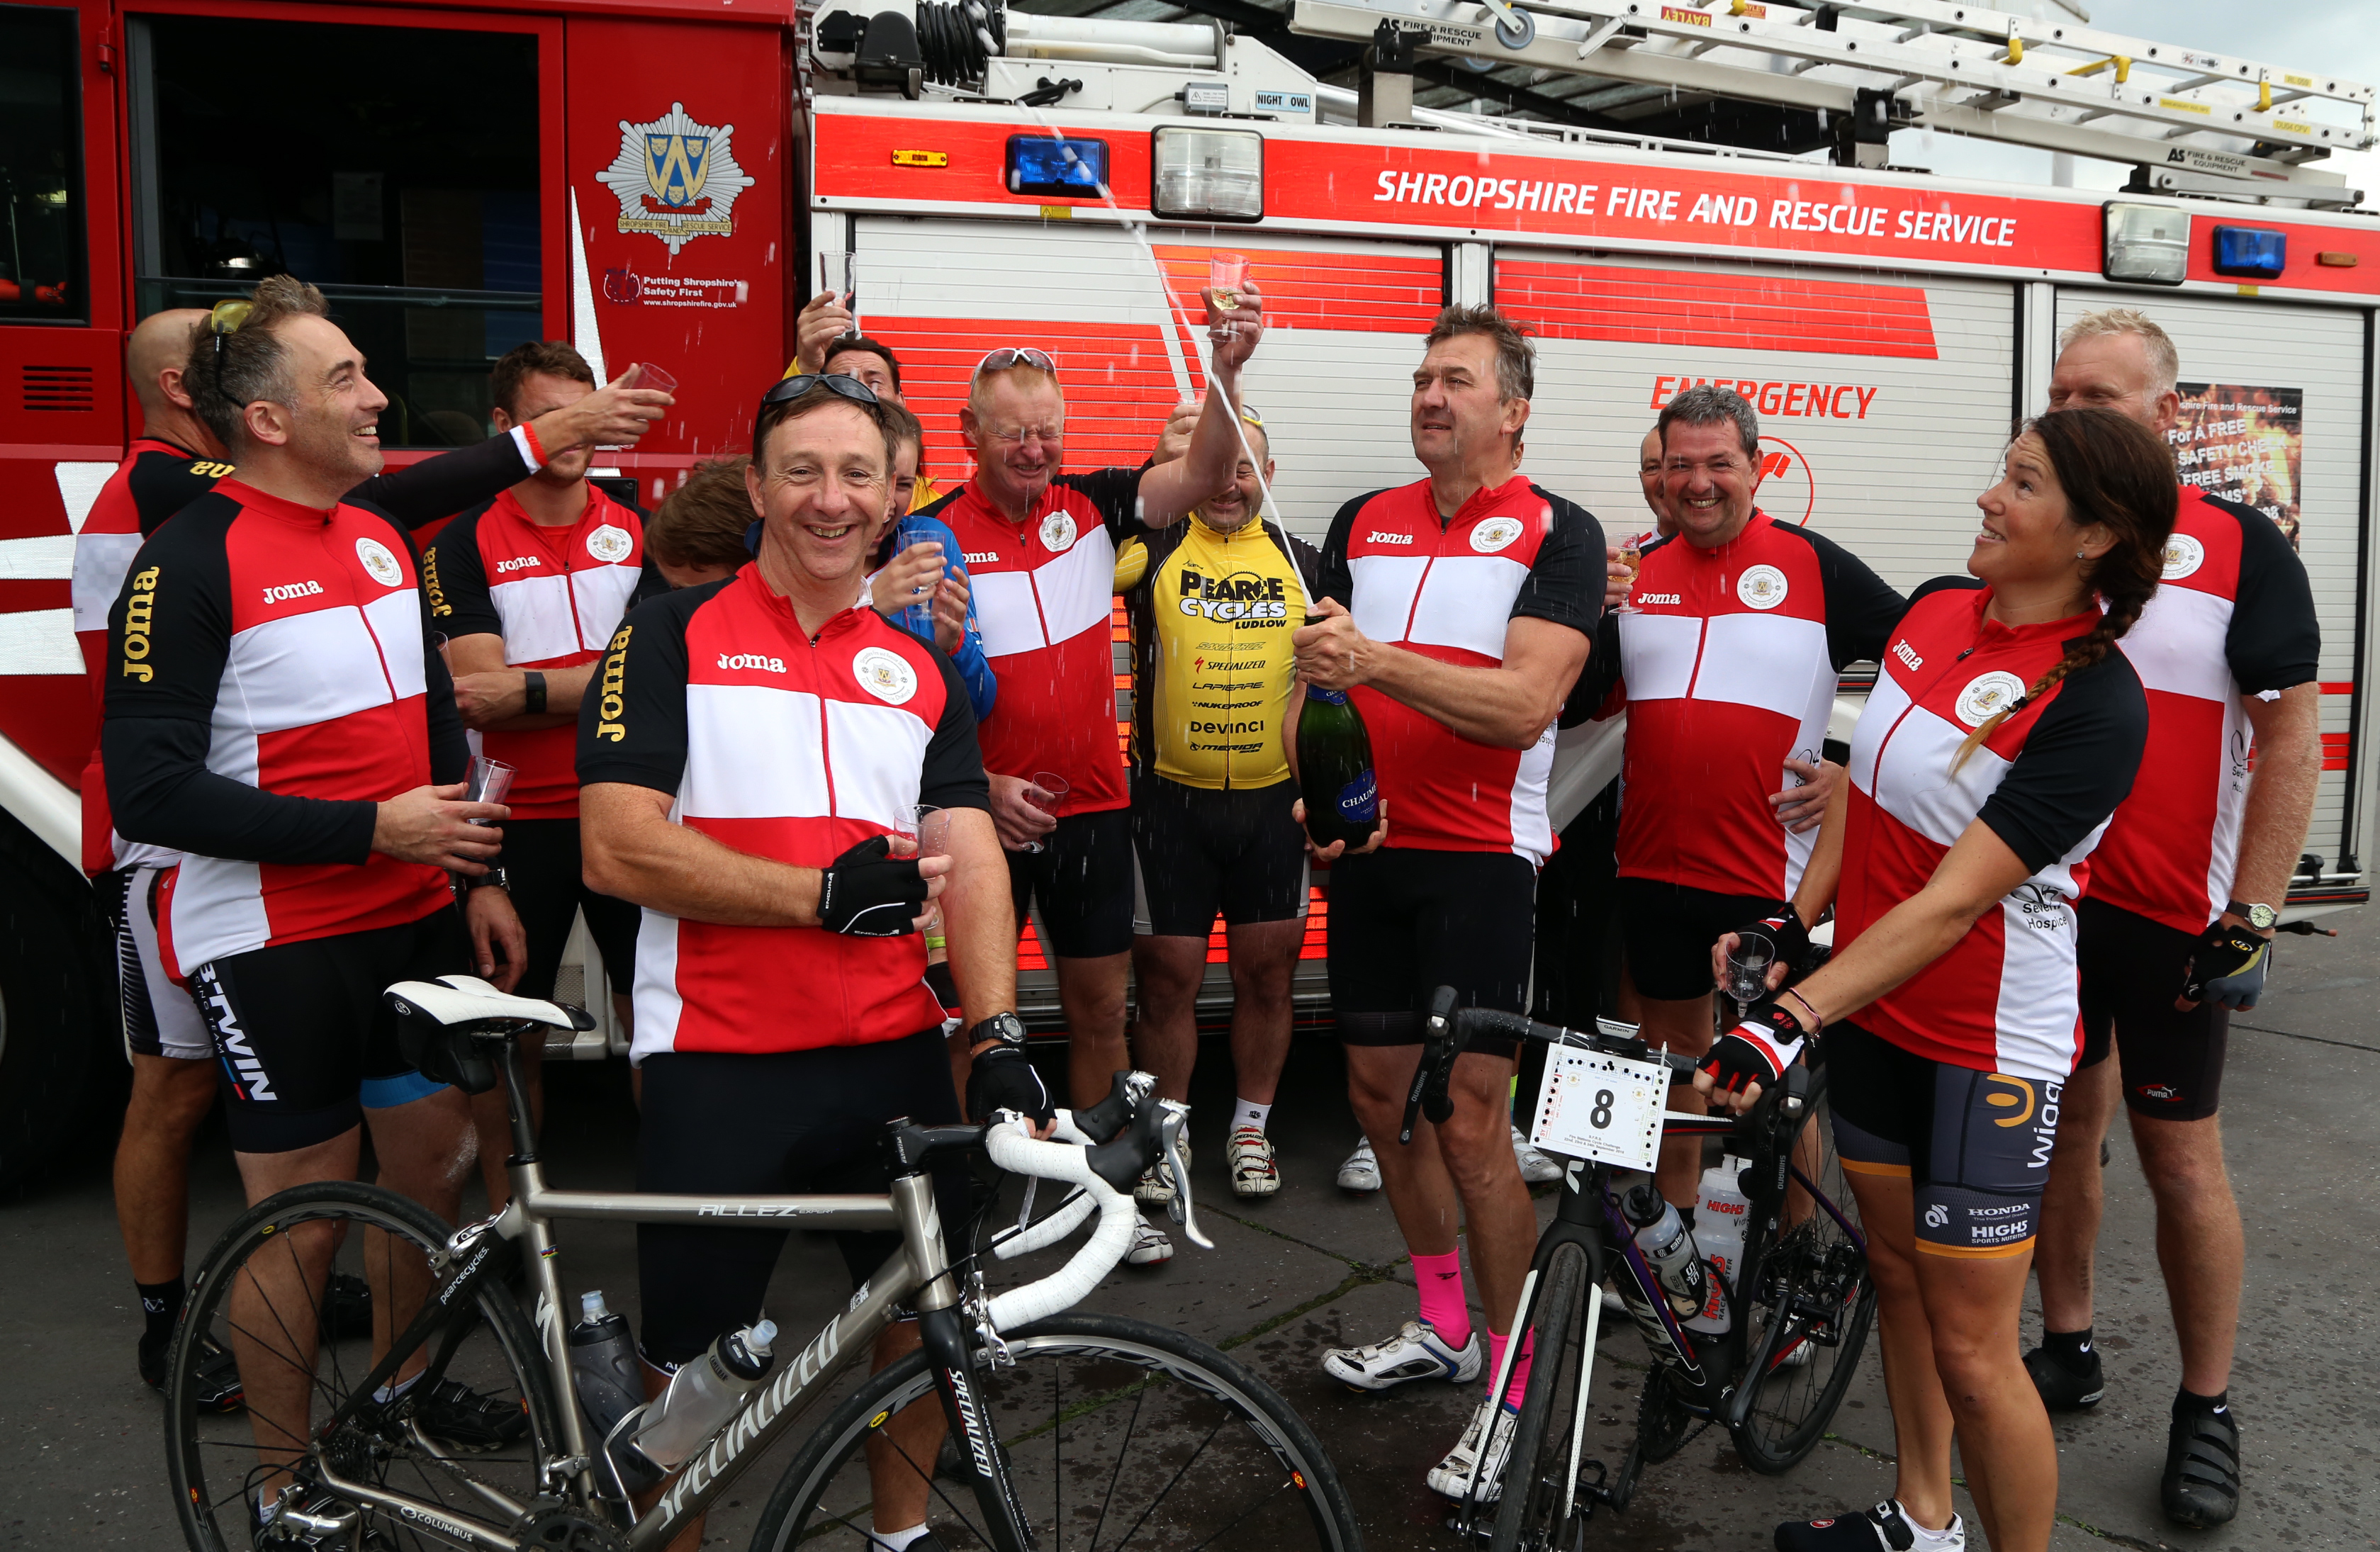 Champagne corks popped at the end of a marathon three day charity cycle ride in aid of The Severn Hospice and the Fire Fighters Charity by members of Shropshire Fire and Rescue Service.